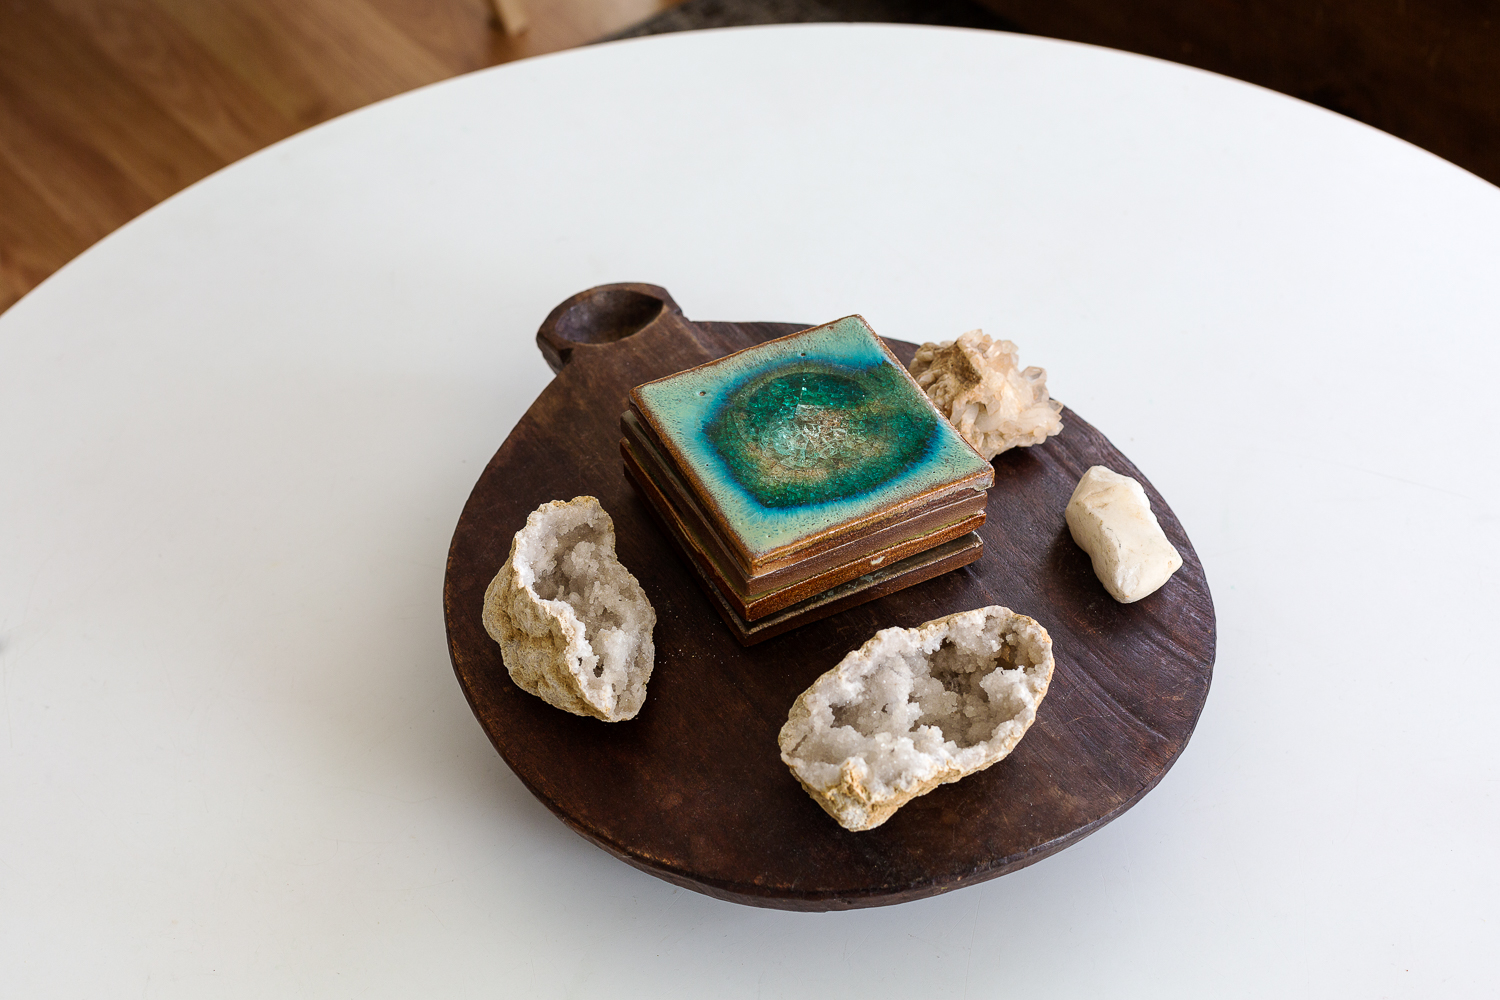 Rock-lover. A pile of   Anthropologie  coasters and some gathered geodes from travels to the ocean and Colorado.